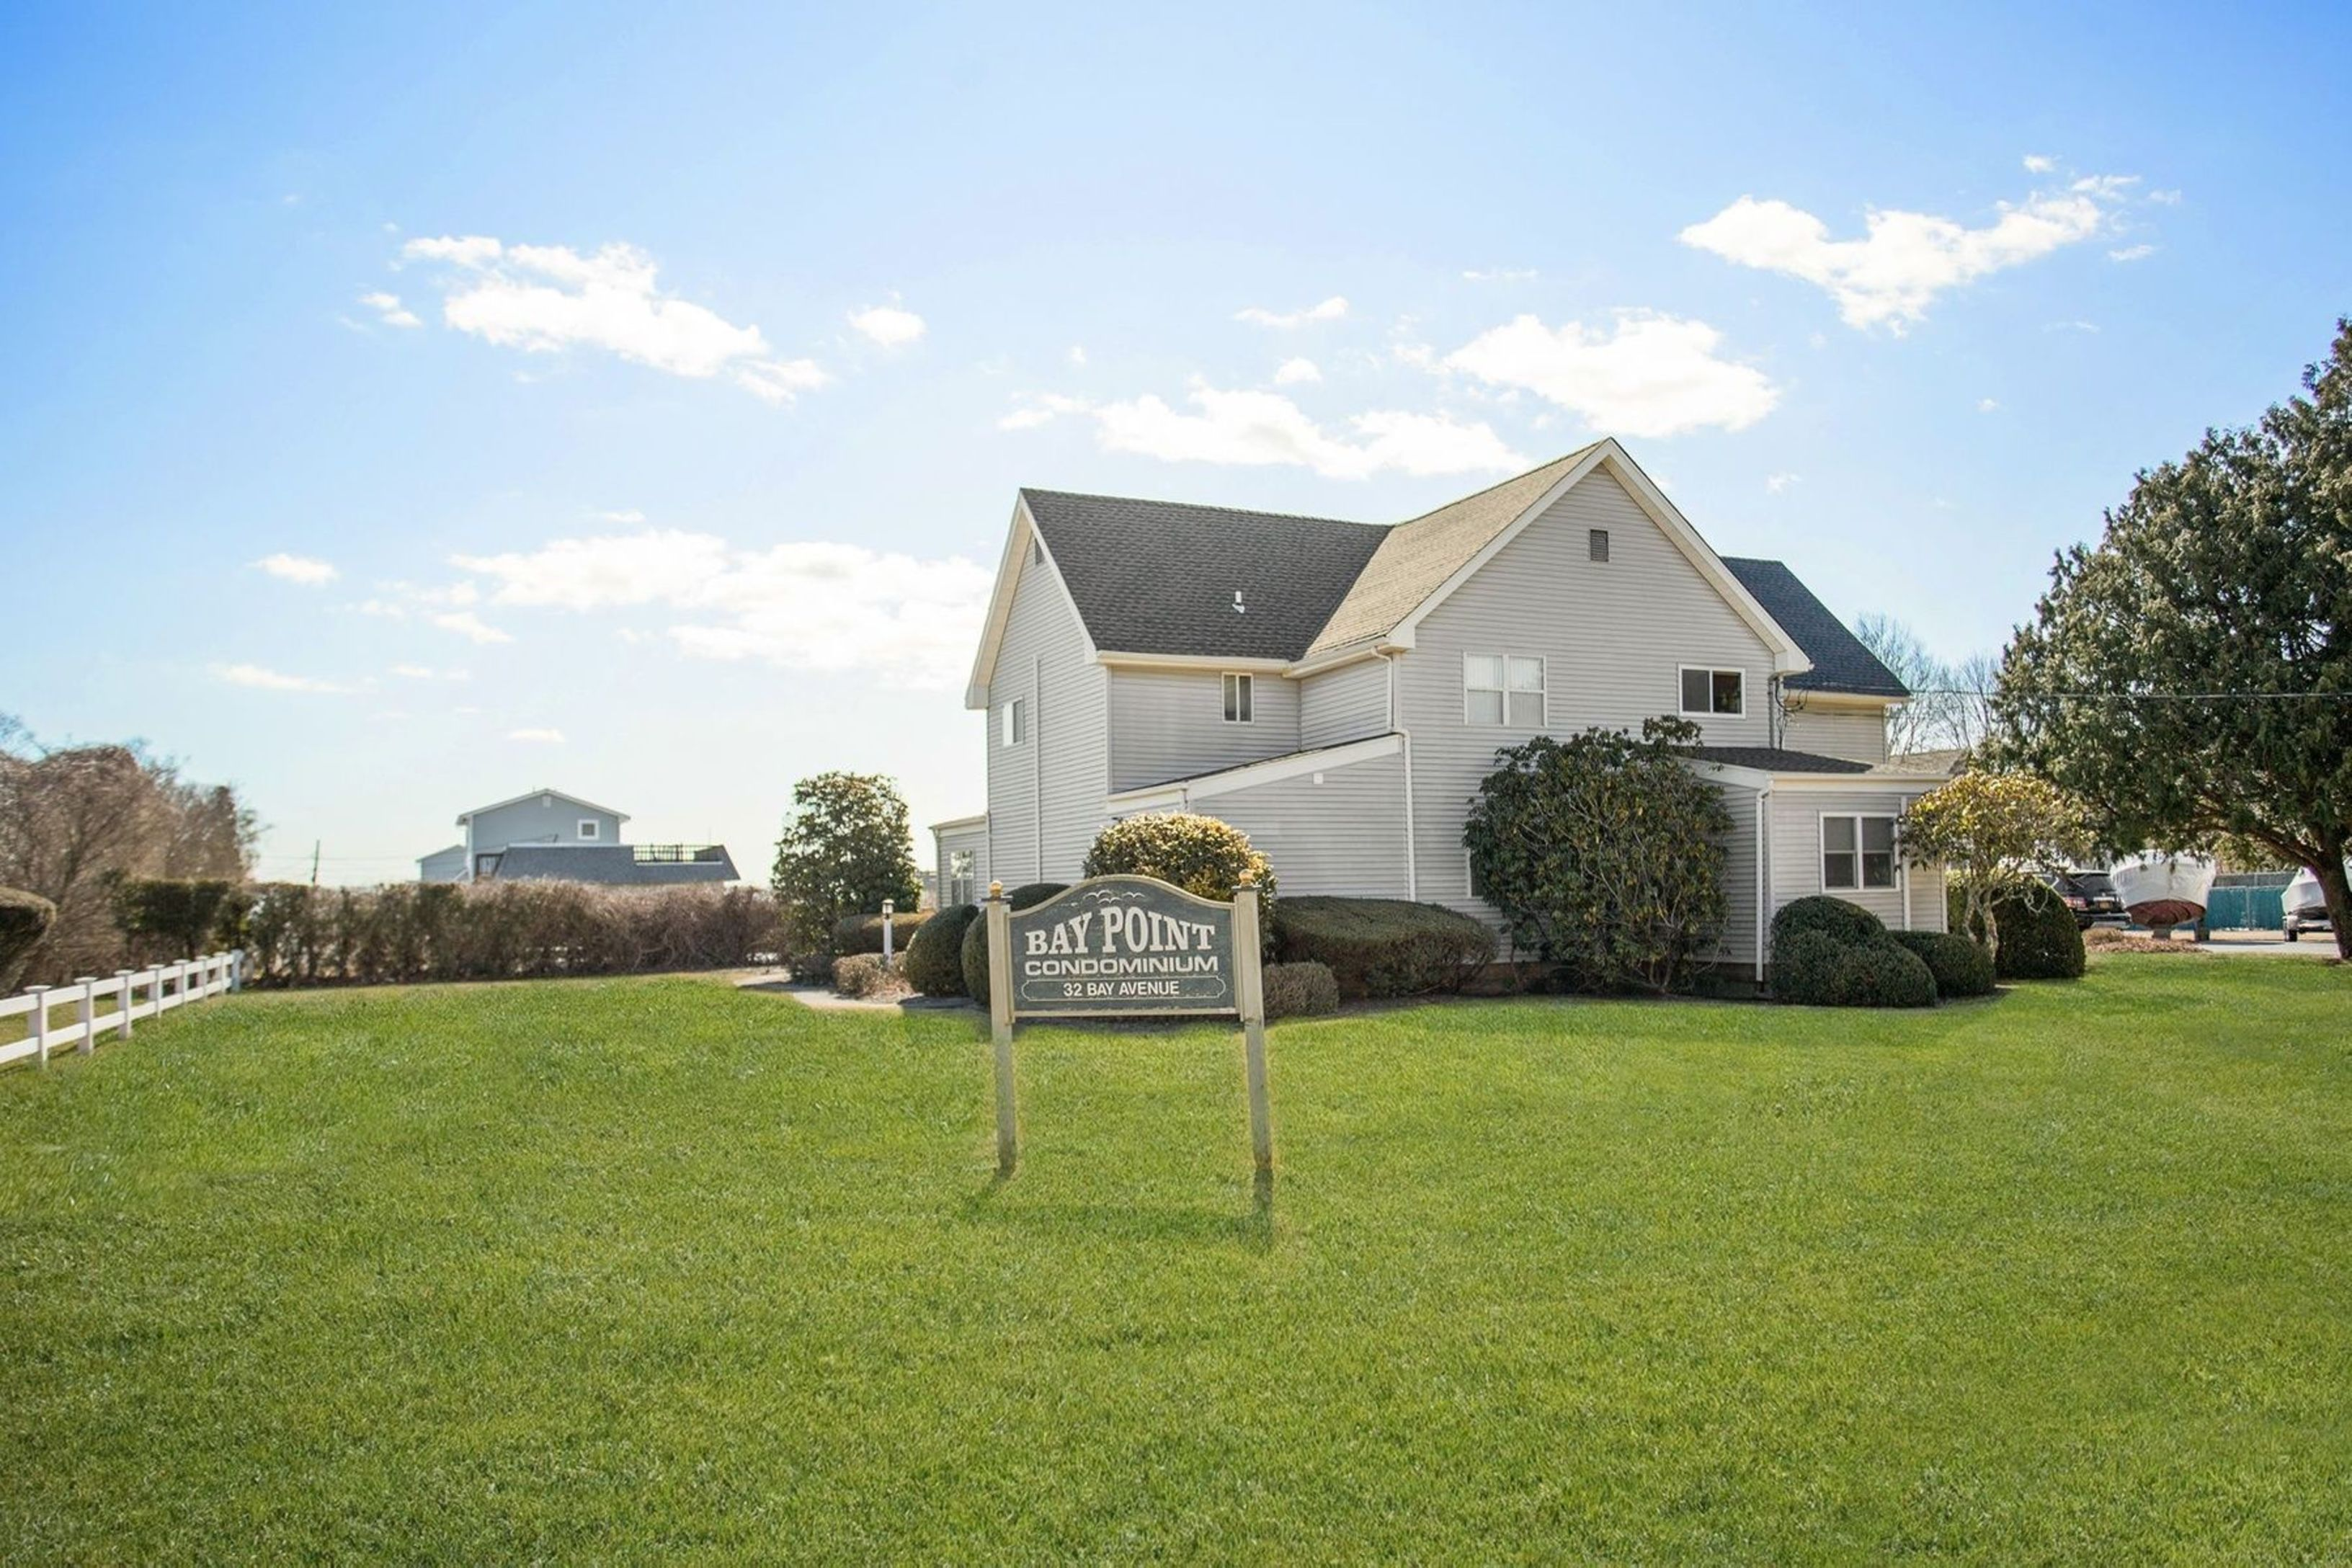 32 Bay Ave., Unit 16 - East Quogue, New York